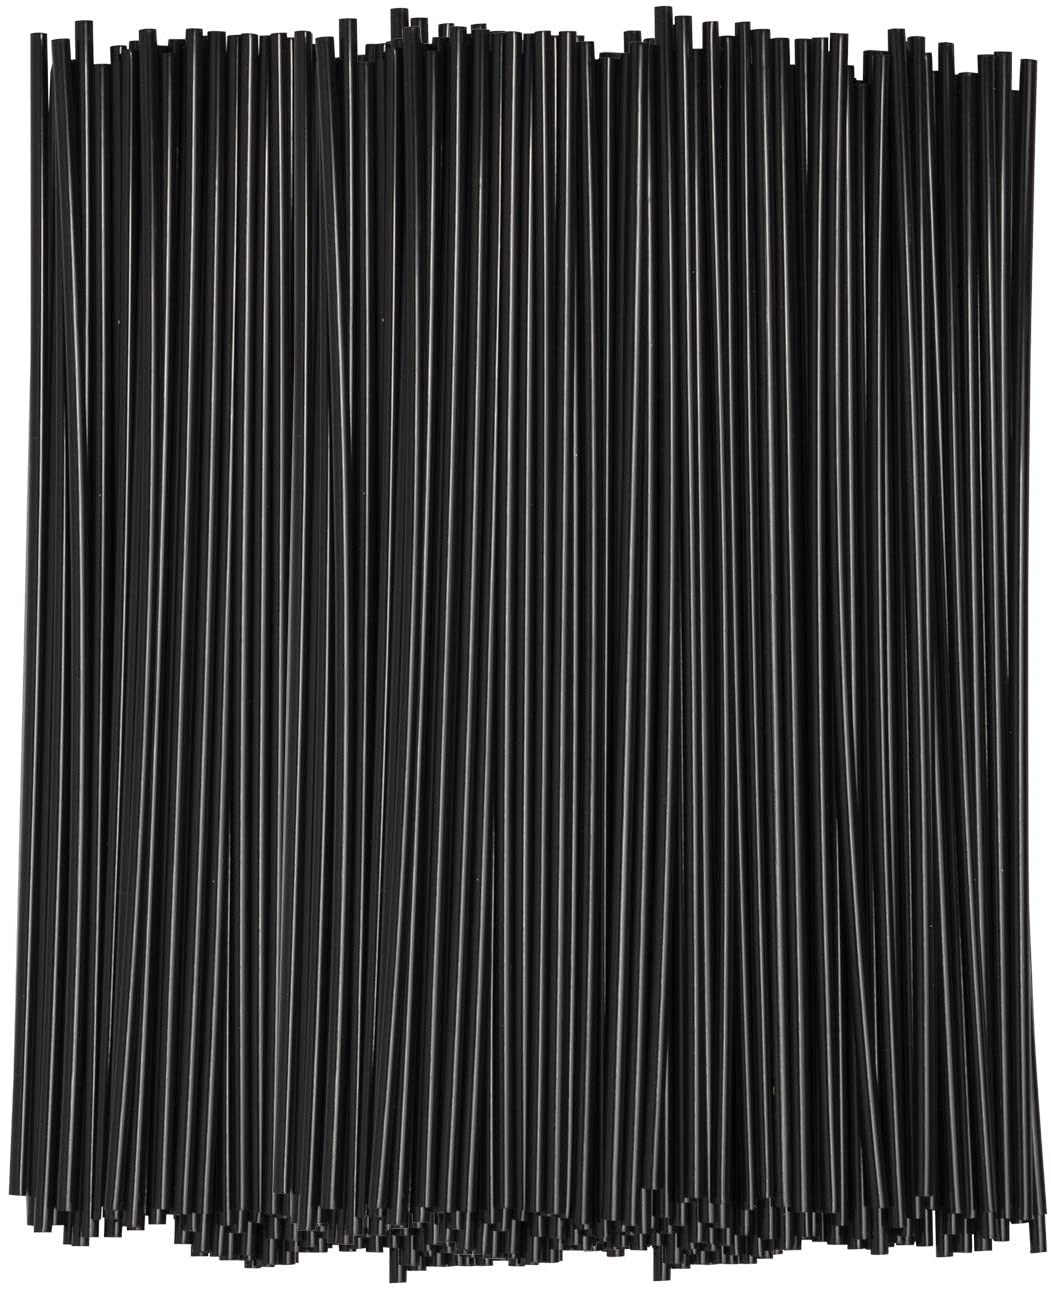 [1000 Bulk Pack] 7 Inch Plastic Sip Stirrers/Straws - Disposable Stir Sticks for Coffee & Cocktail - Black